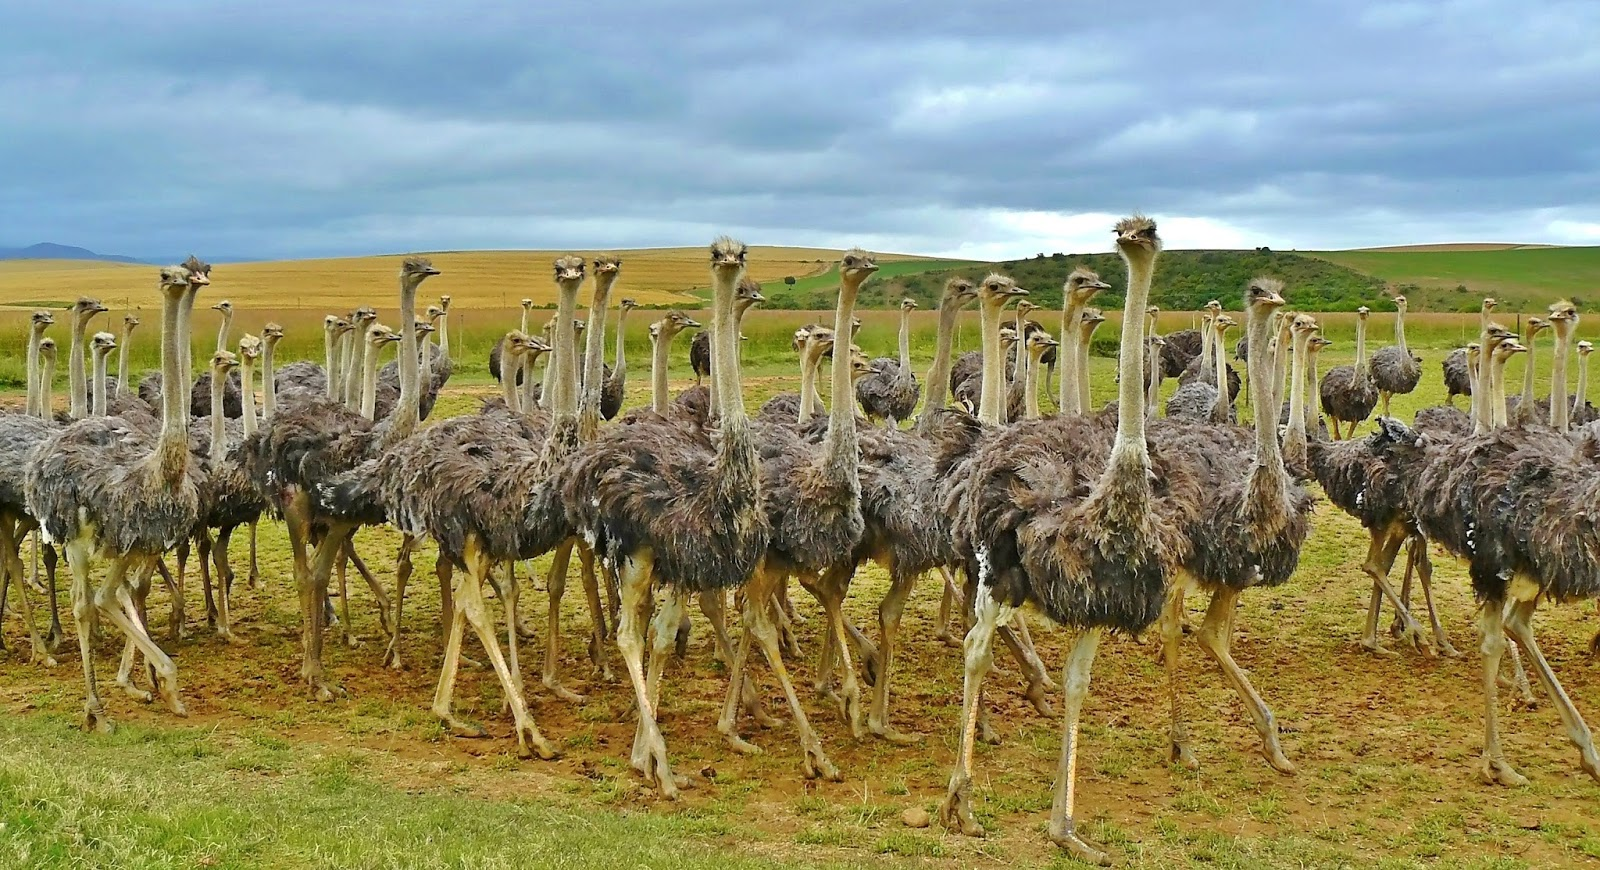 Ostriches in a farm